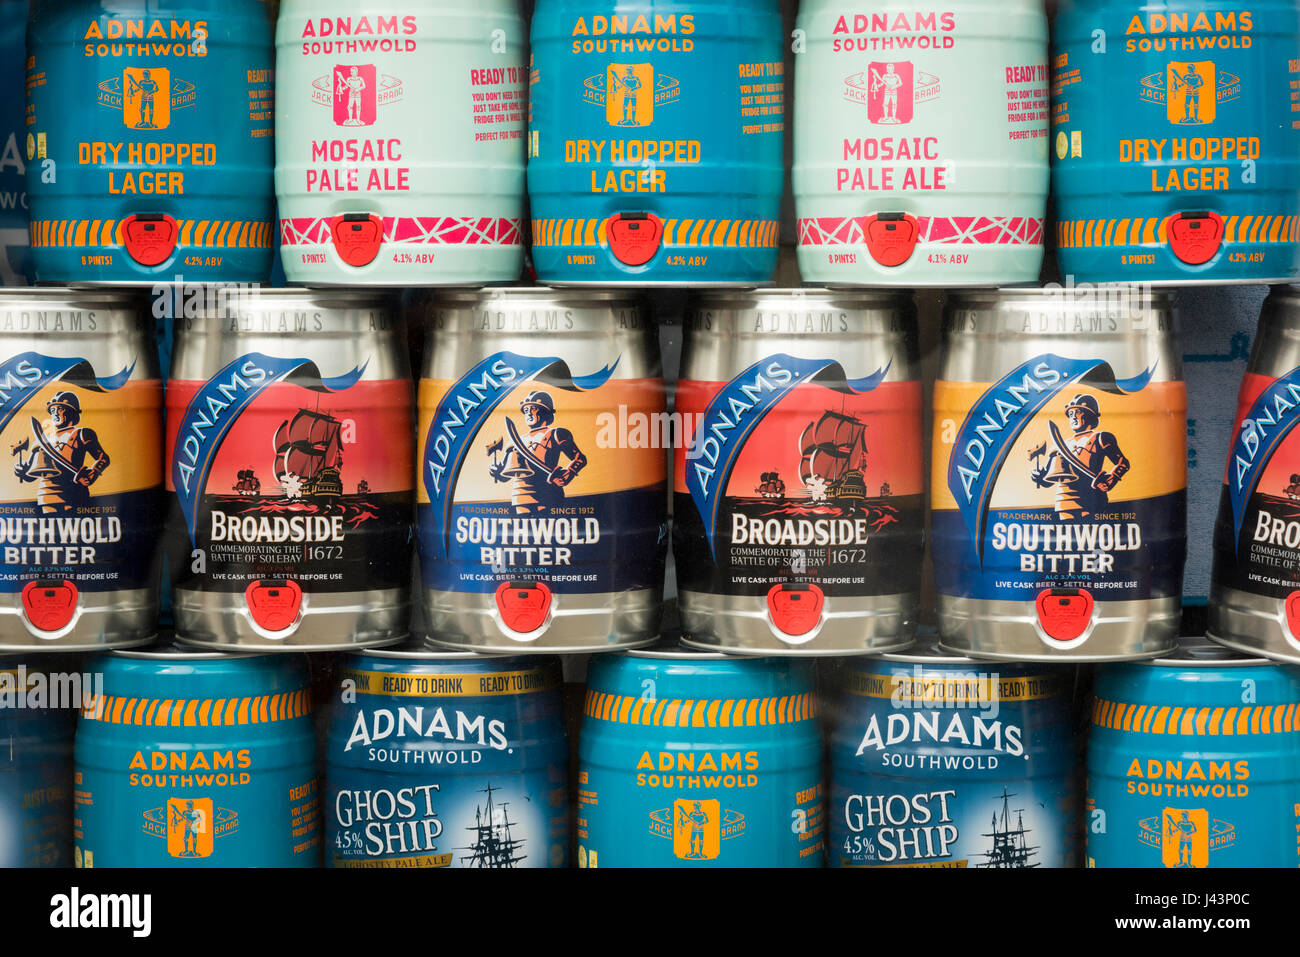 Metal barrels of beer brewed by the Adnams Brewery Suffolk piled up in a shop windoe - Stock Image